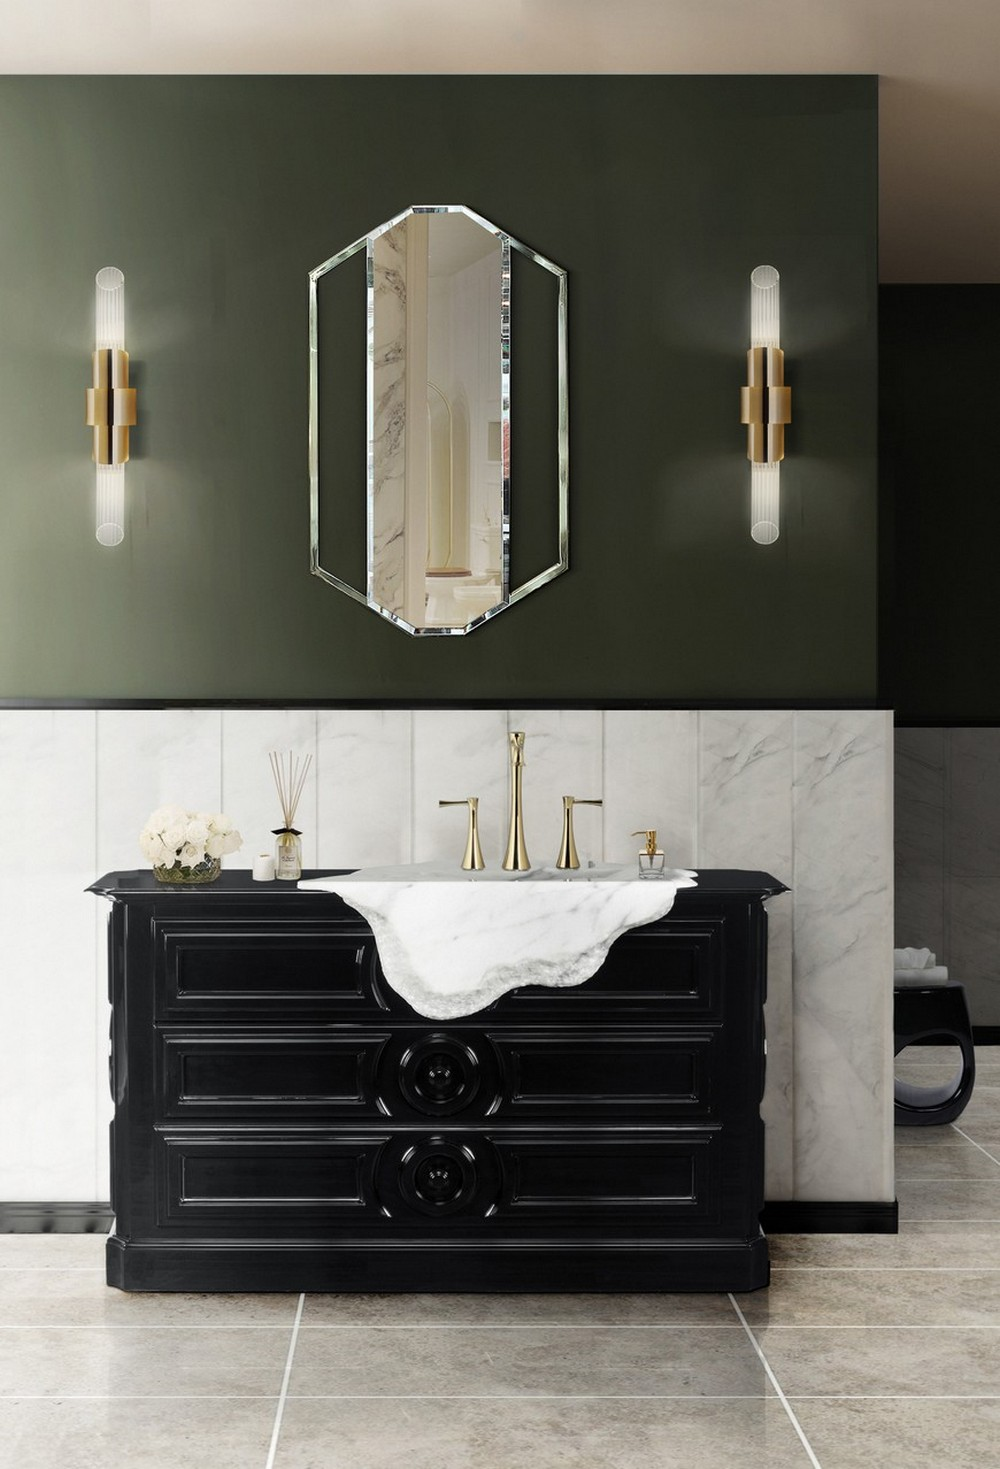 The Ultimate Design Trend For A Perfect Luxury Bathroom Design luxury bathroom design The Ultimate Design Trend For A Perfect Luxury Bathroom Design The Ultimate Design Trend For A Perfect Luxury Bathroom Design 2